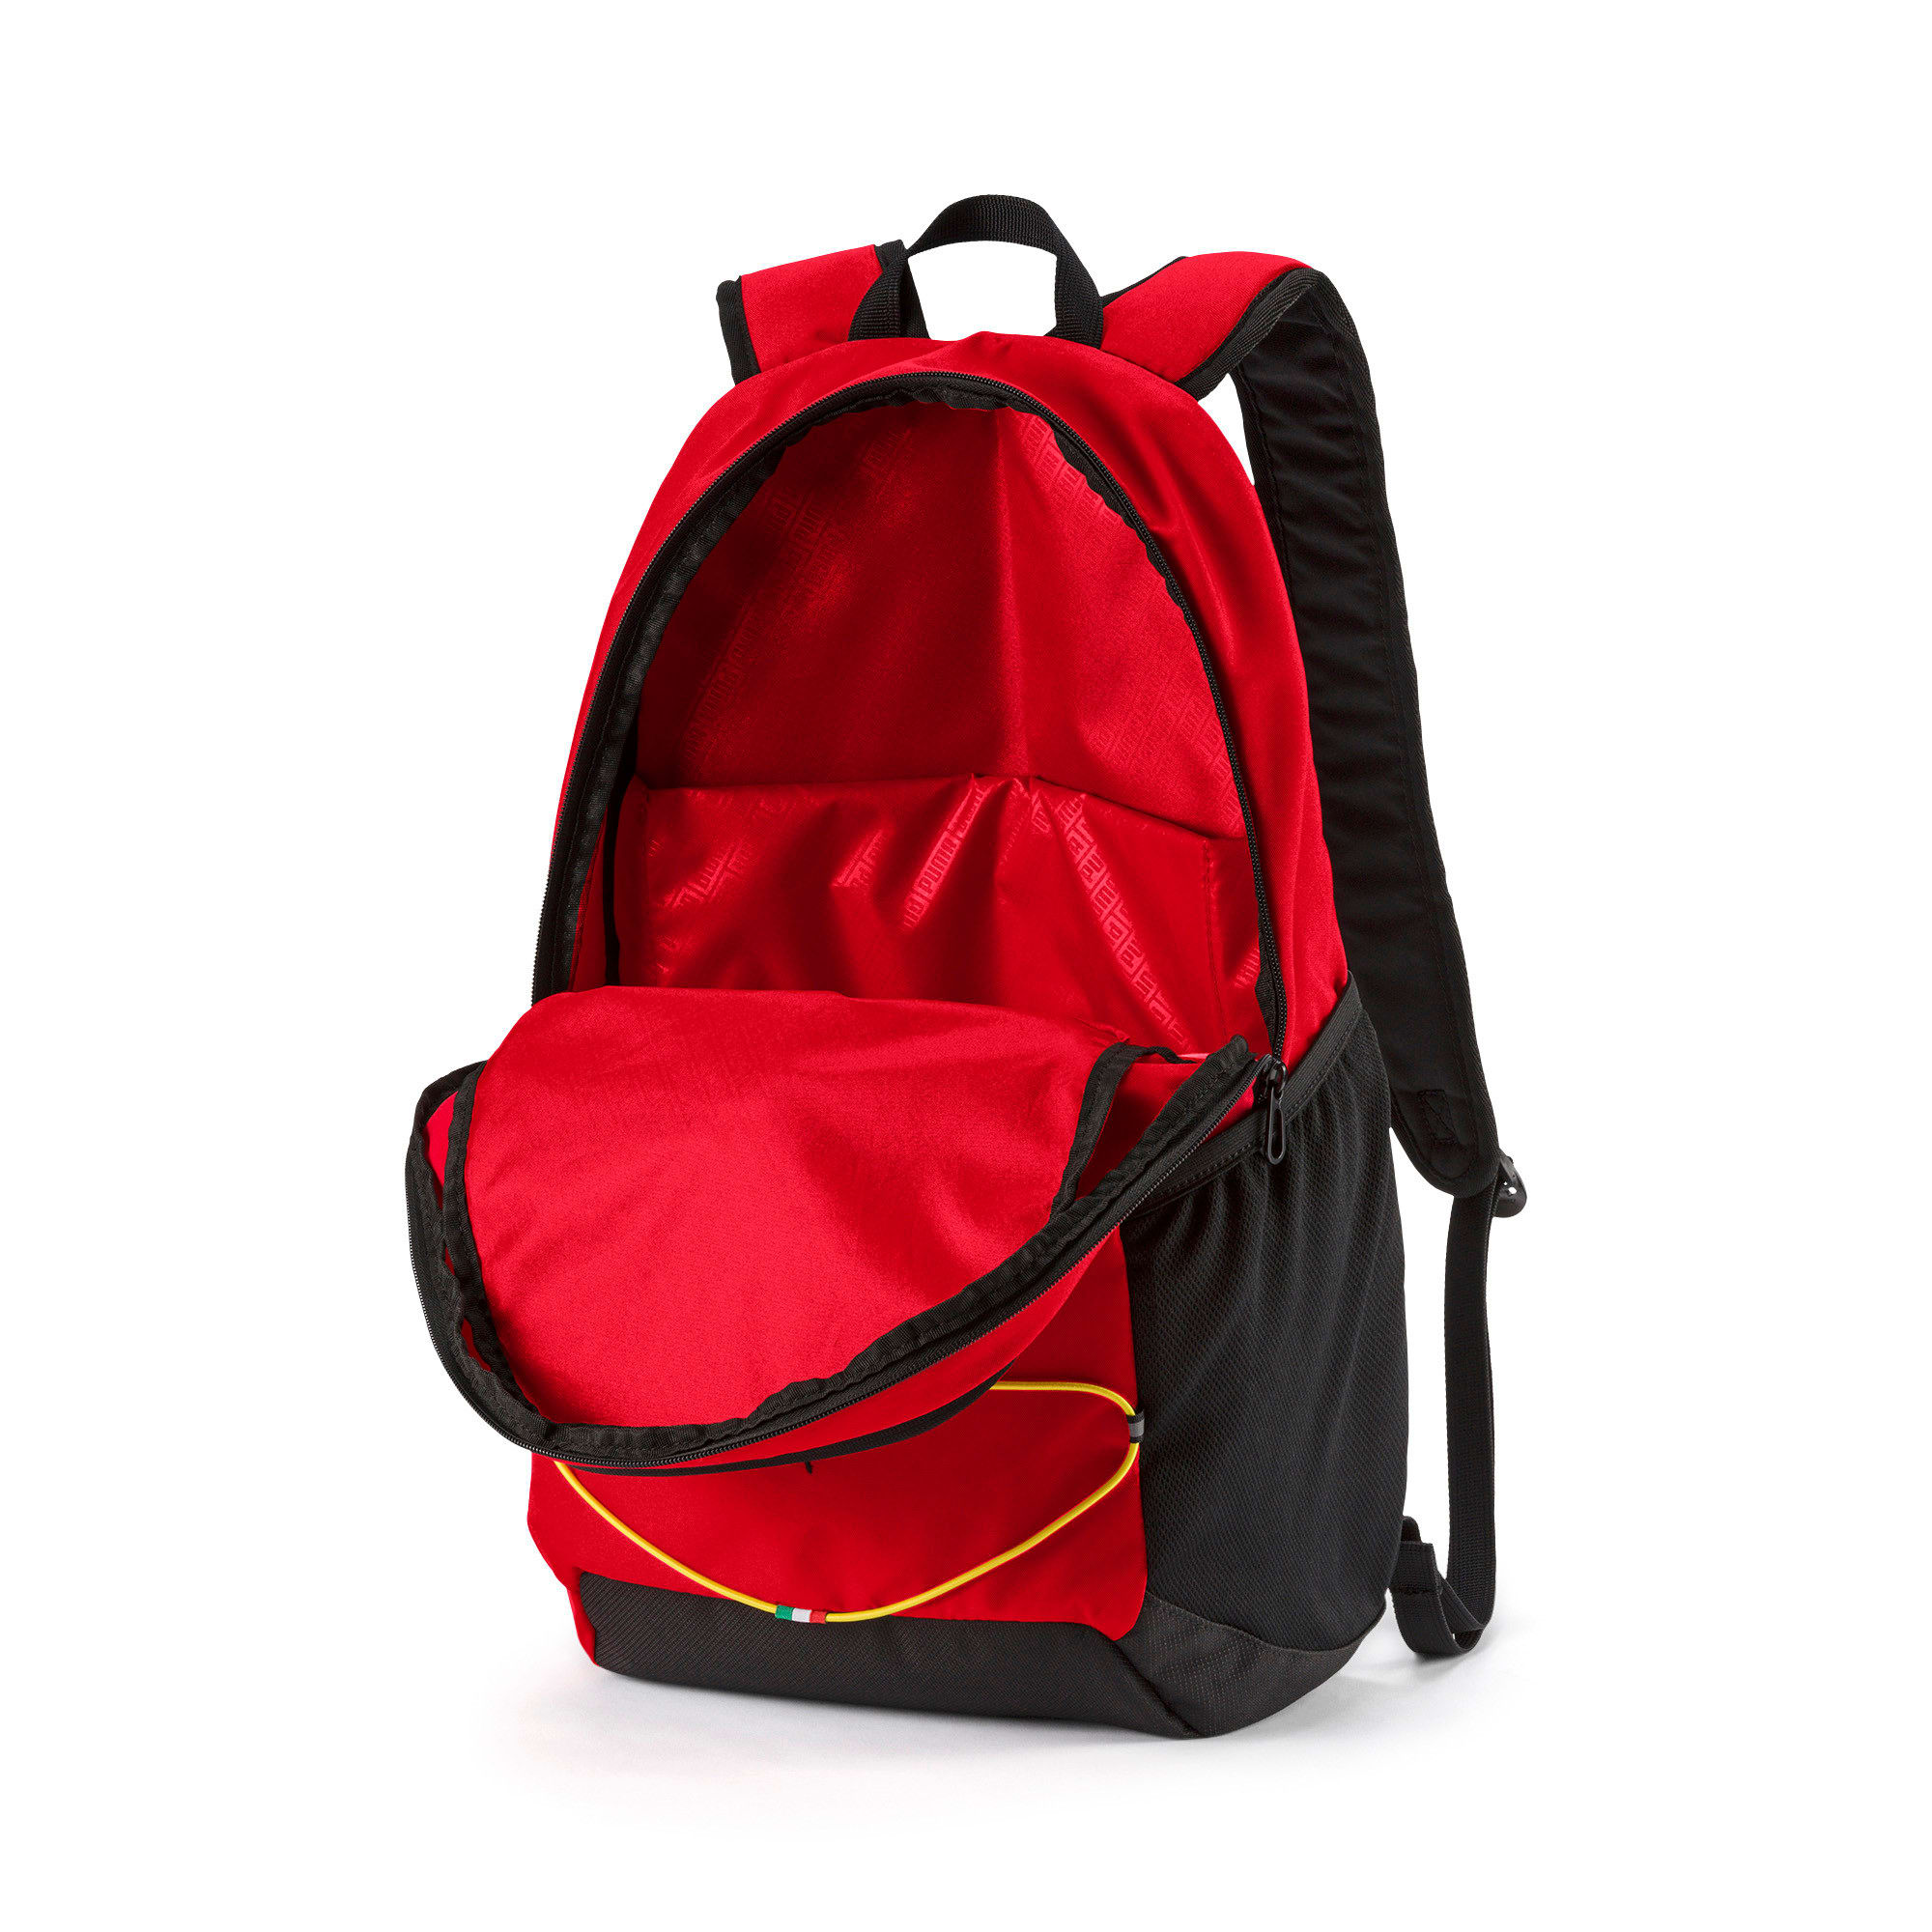 Thumbnail 3 of Scuderia Ferrari Fanwear Backpack, Rosso Corsa, medium